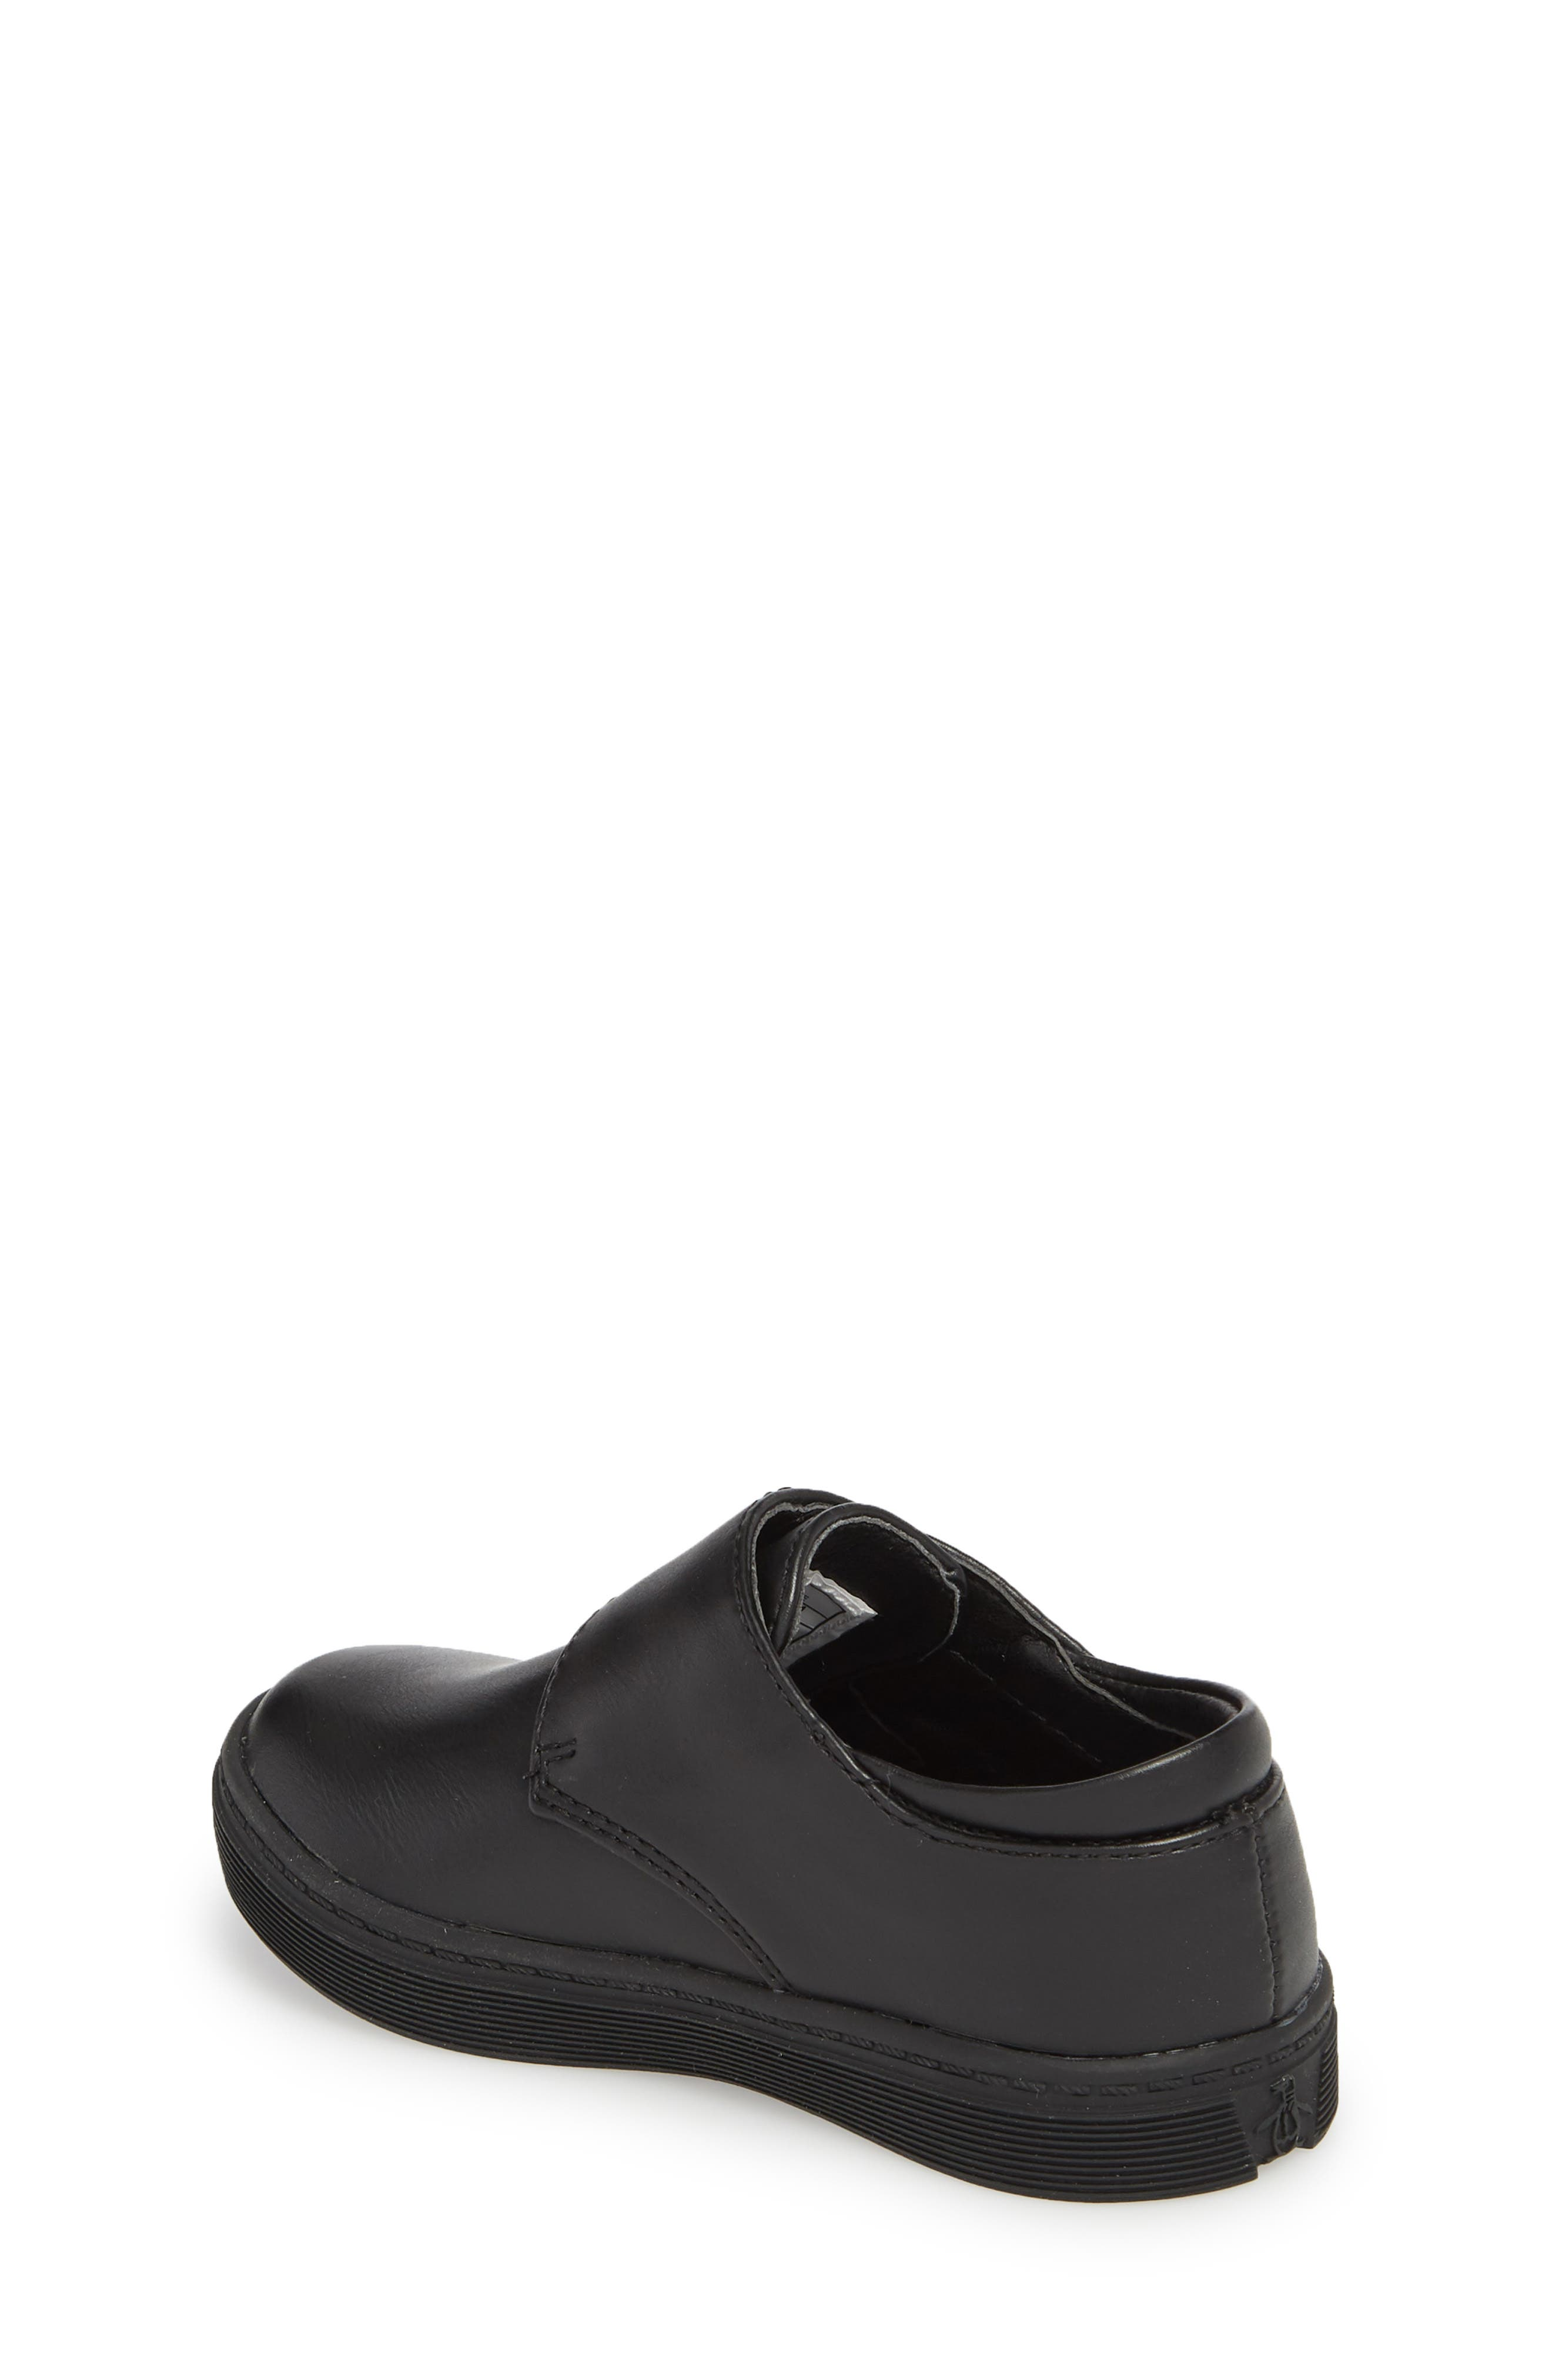 Felton Sneaker,                             Alternate thumbnail 2, color,                             Black/ Black